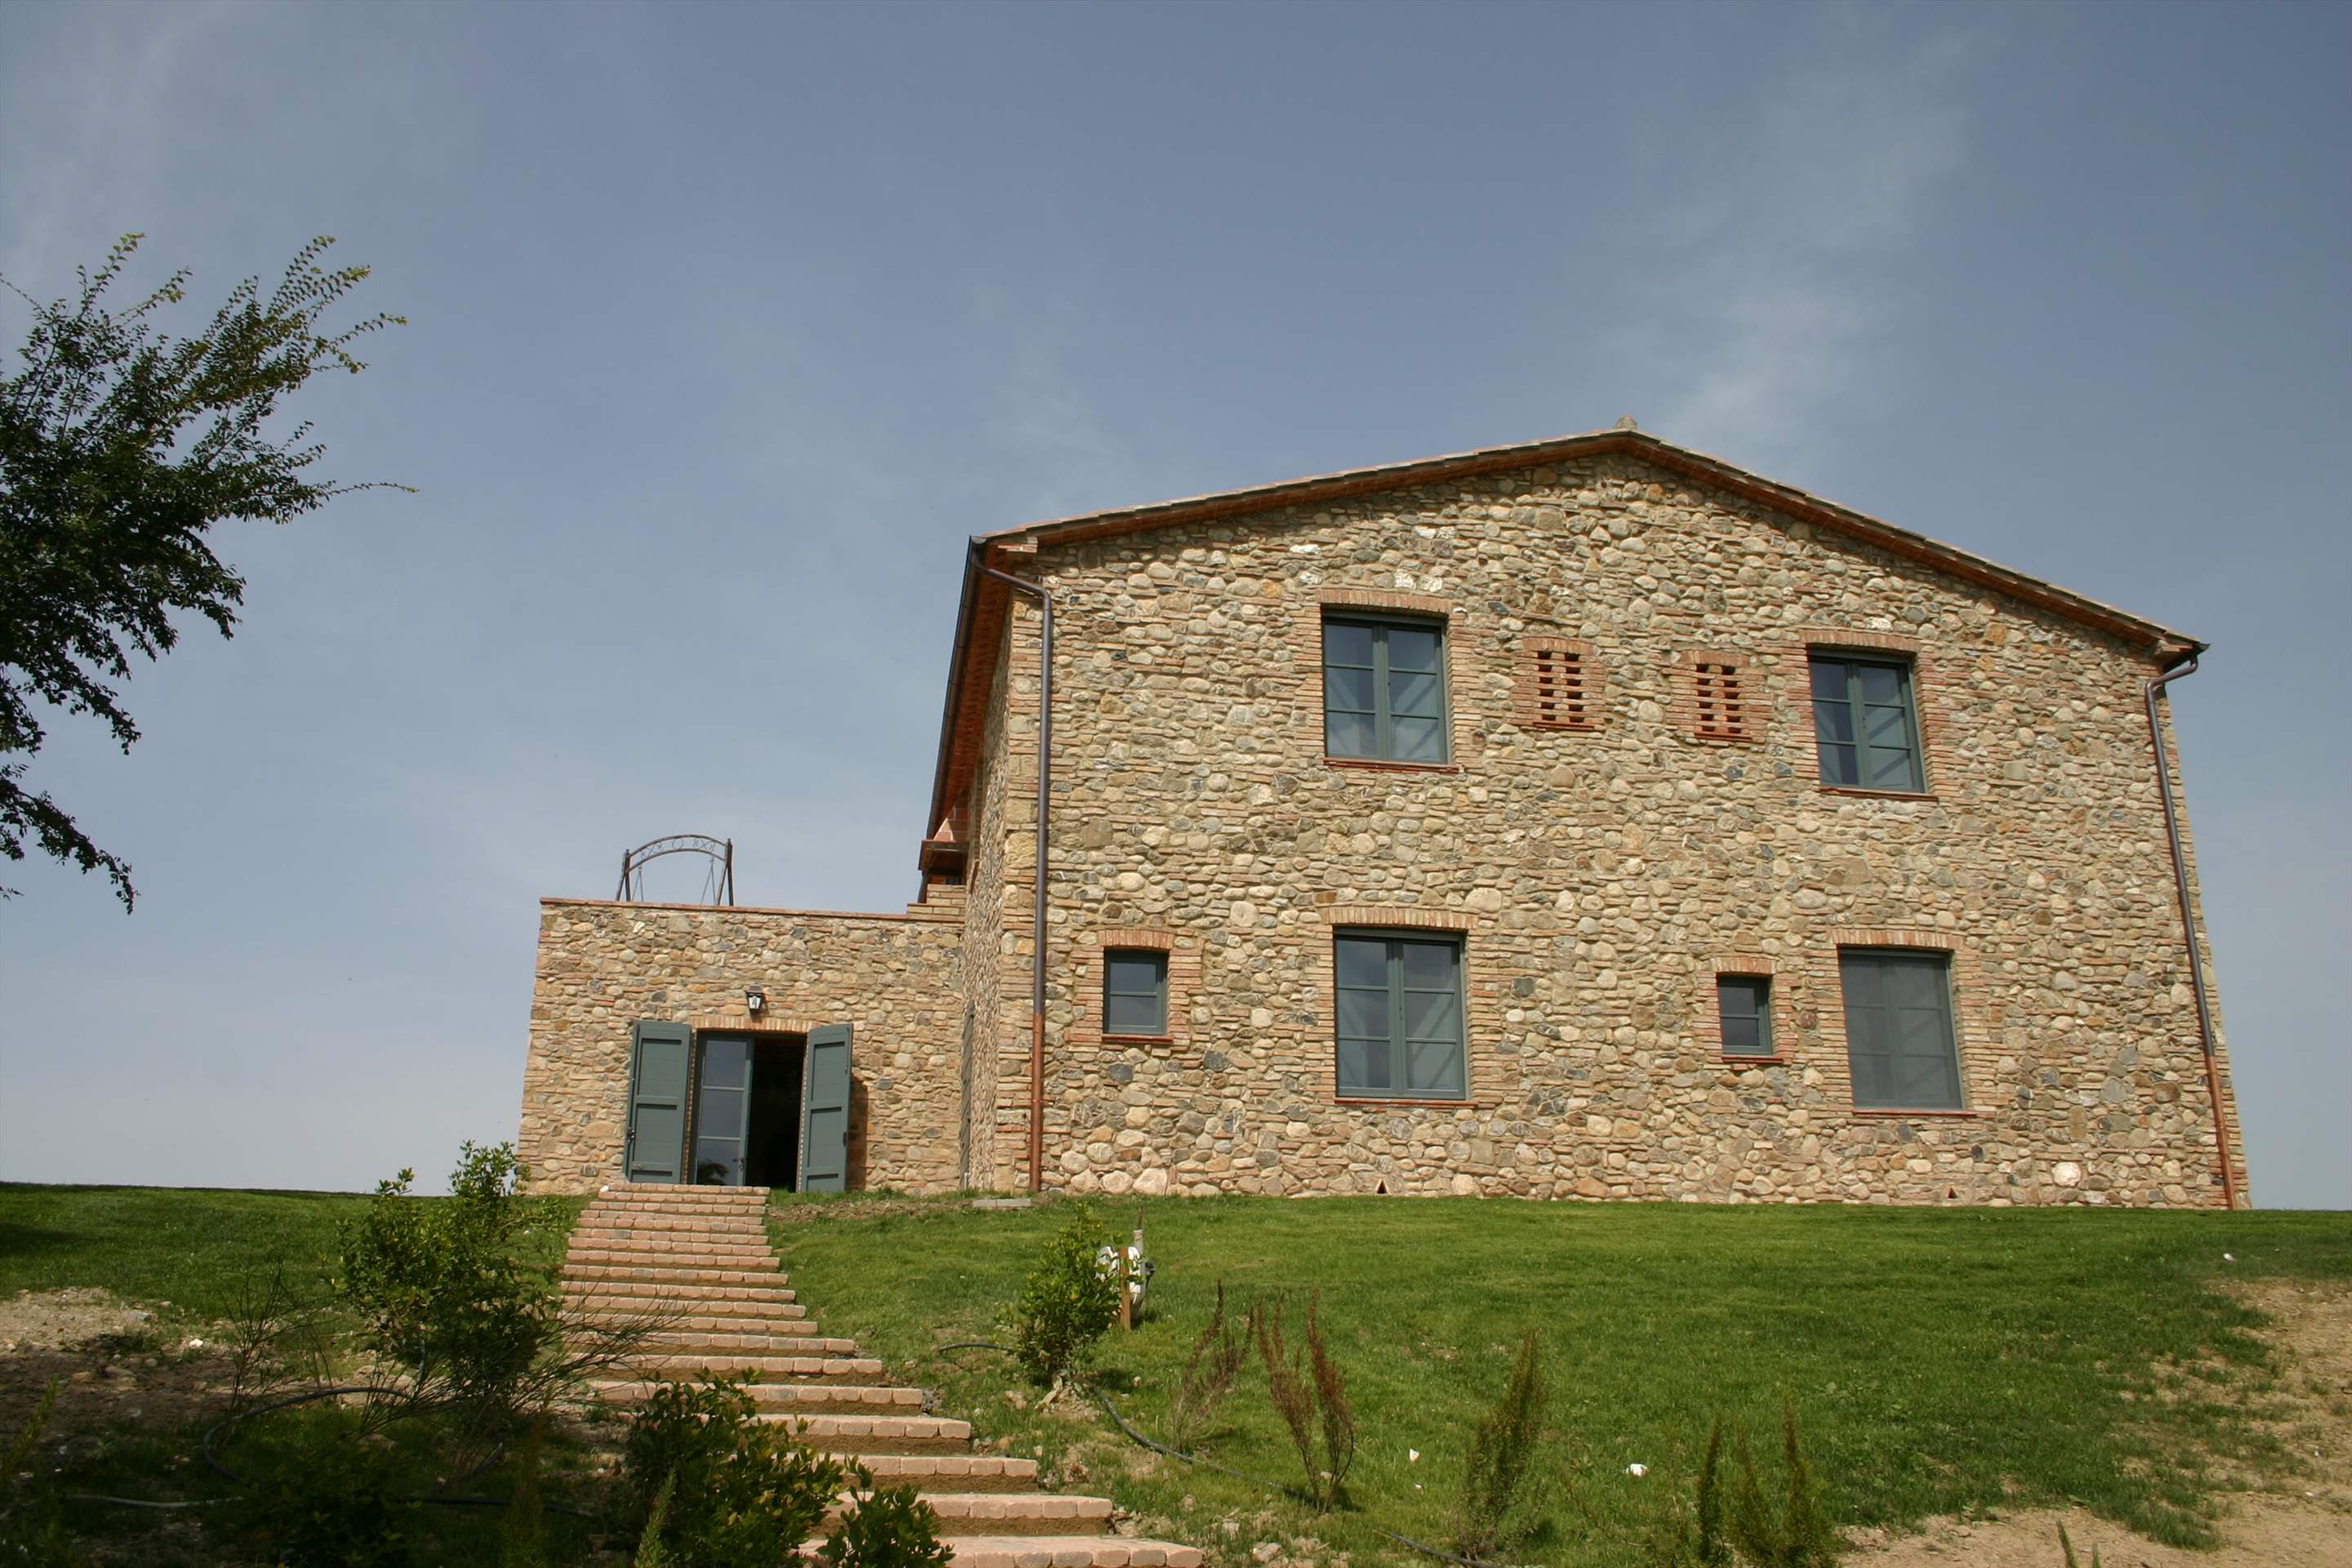 Podere Di Collina, Villa & Apts, 8 bedroom villa in Tuscany Coast, Tuscany Photo #19